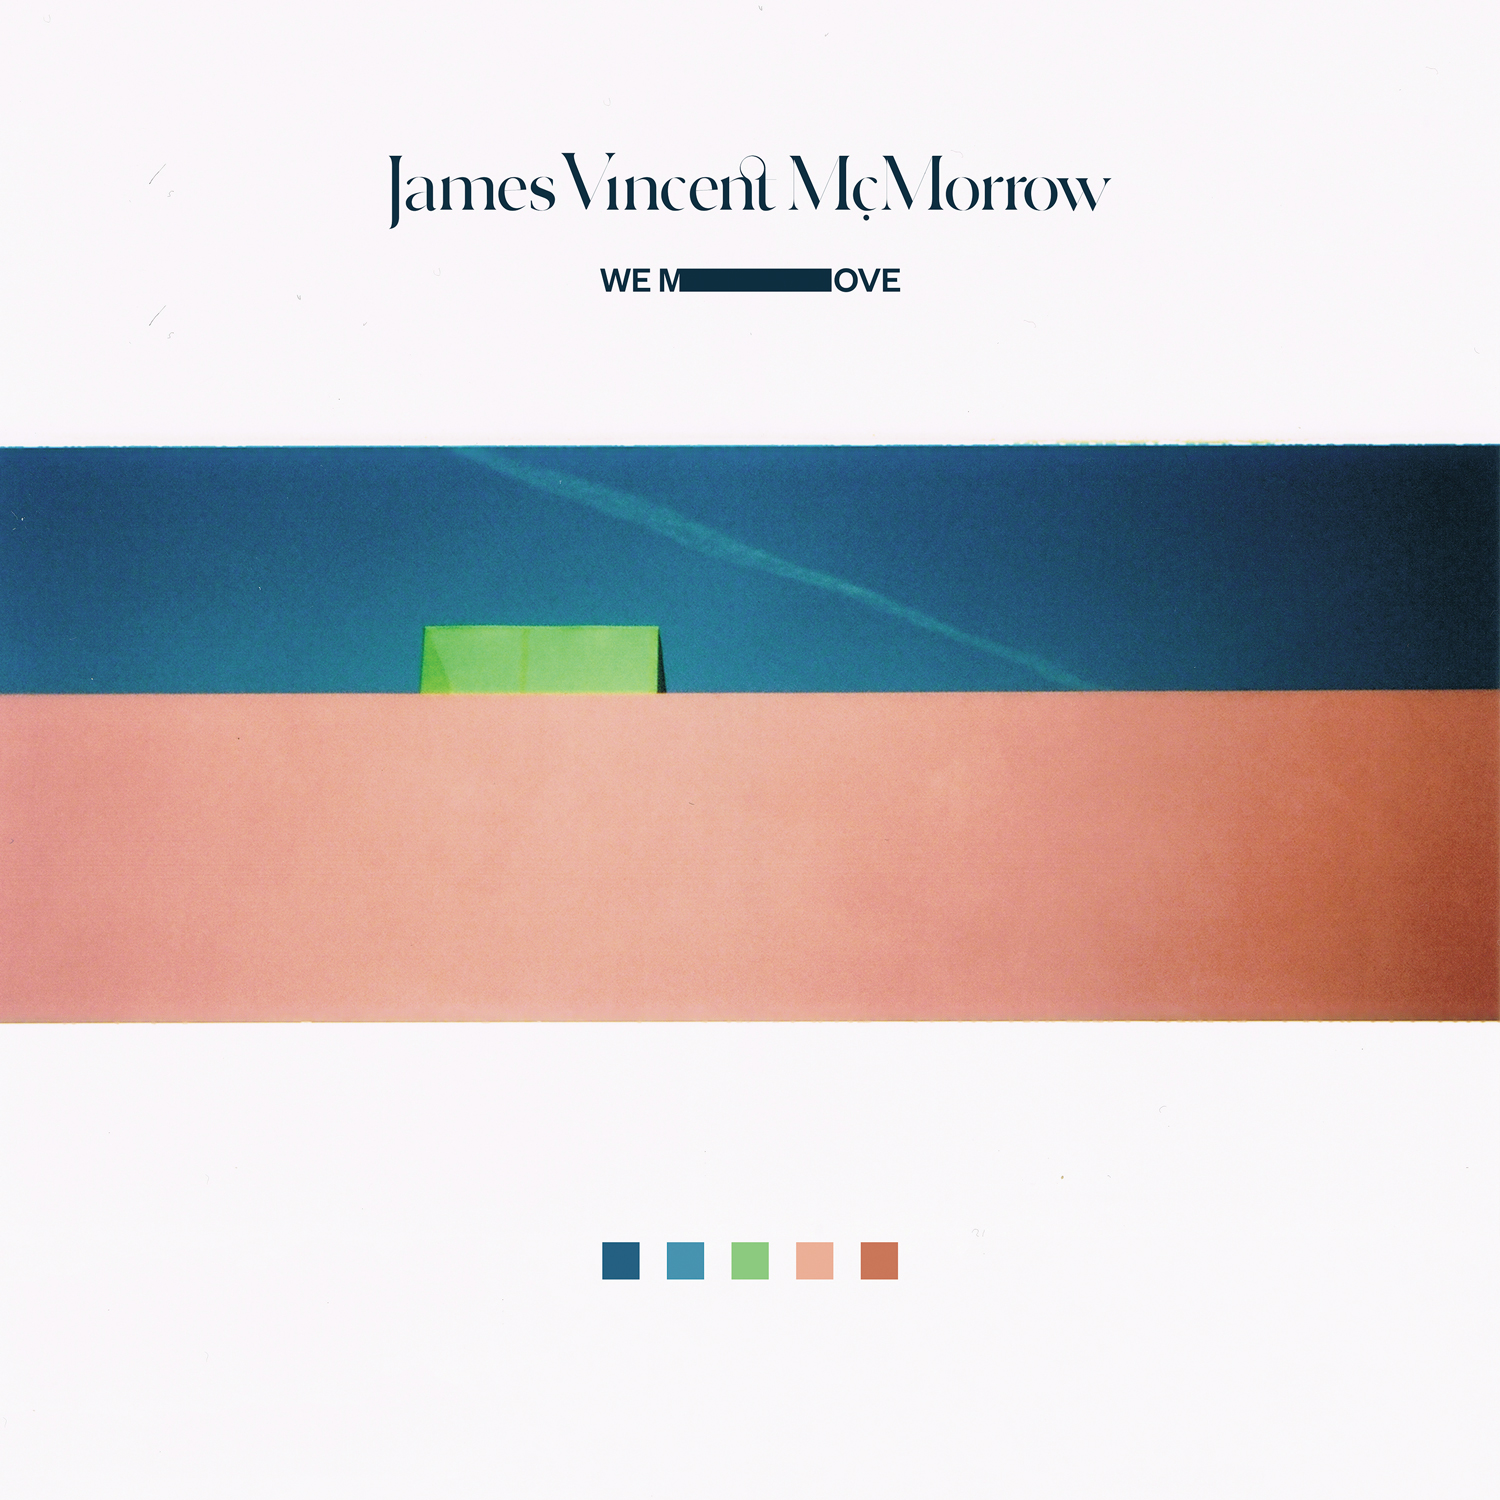 jamesvincentmcmorrow_wemove-web